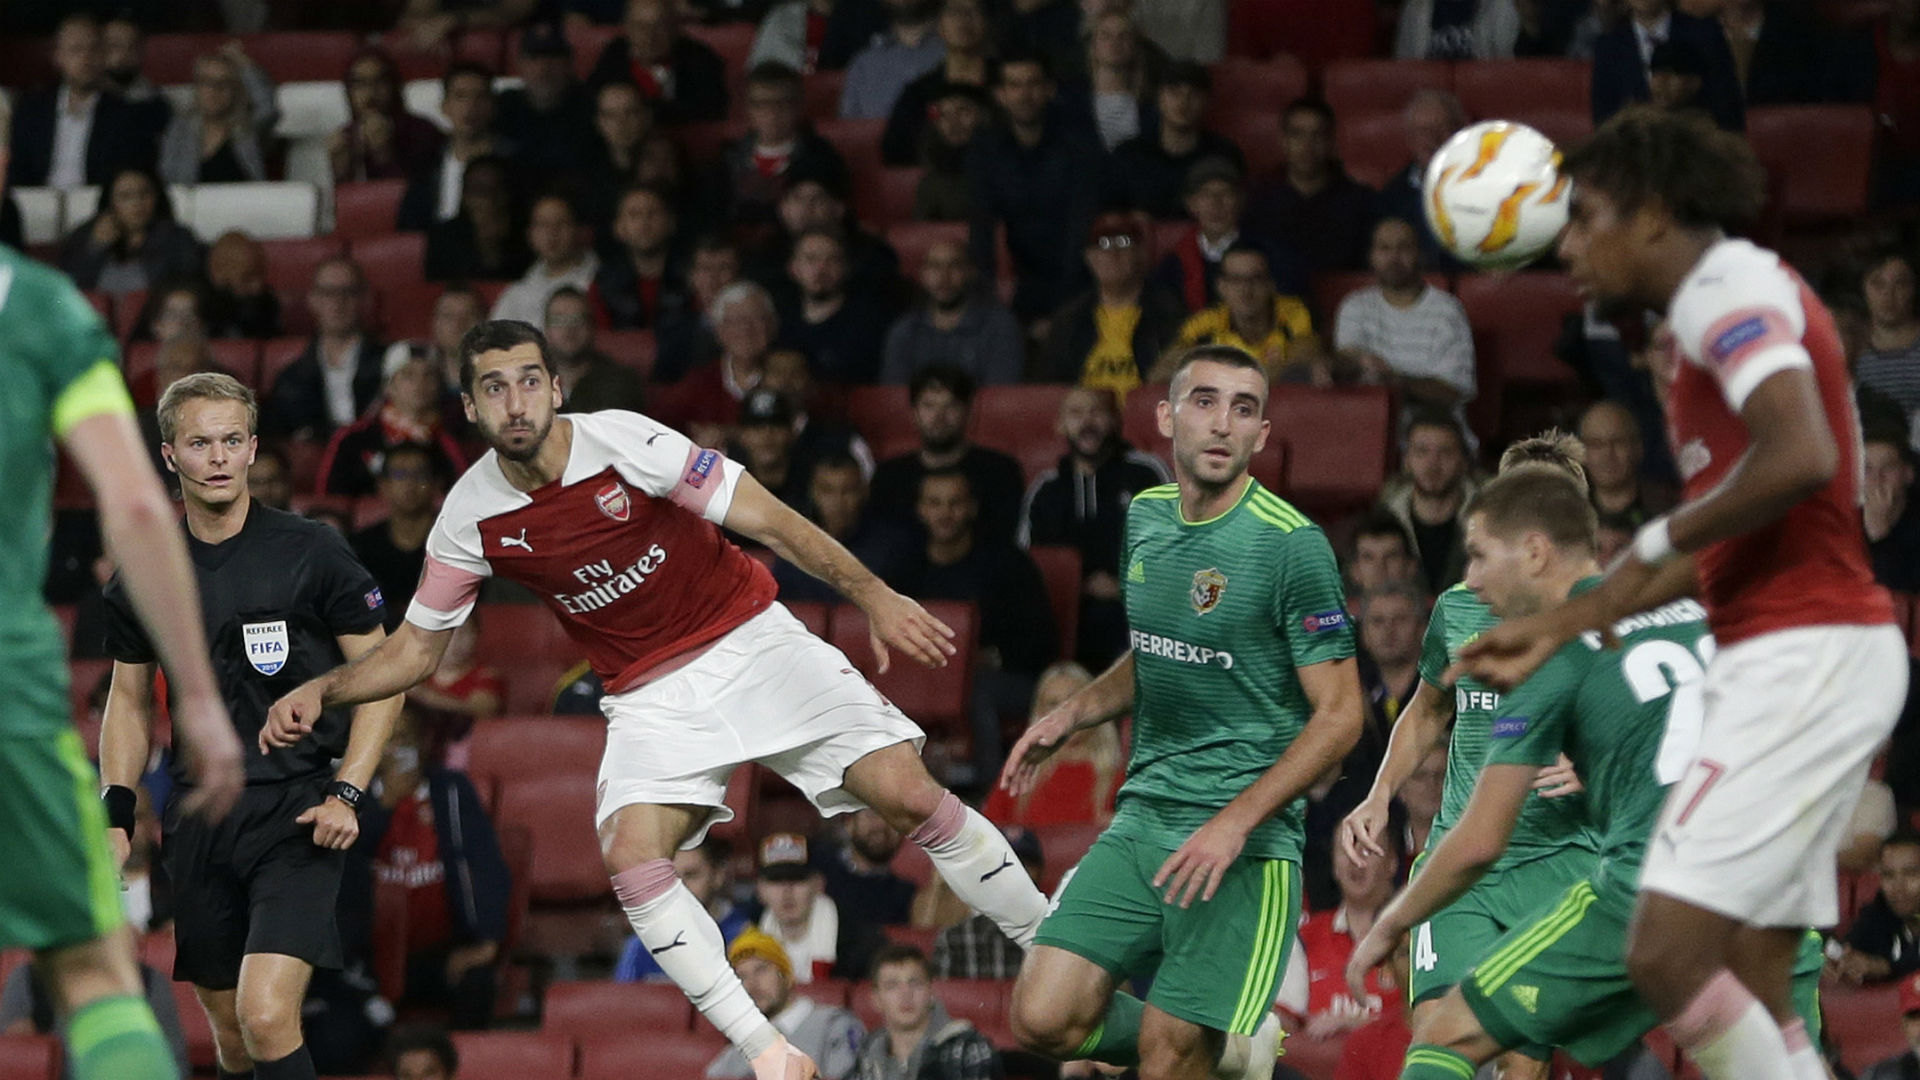 Unai Emery disappointed at Arsenal conceding late on against Vorskla Poltava